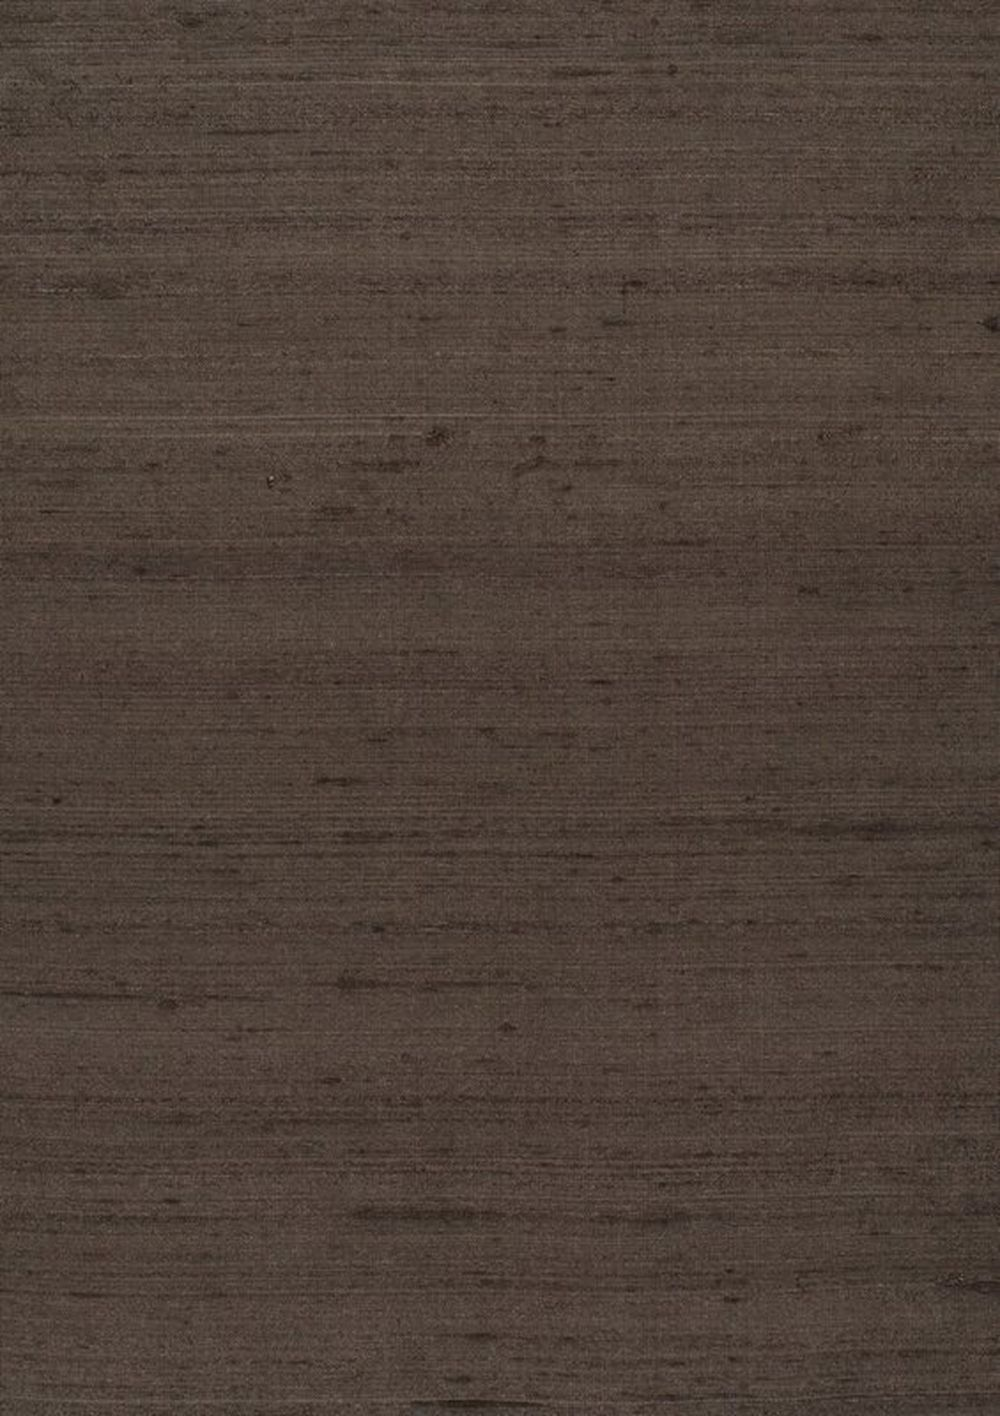 Photo of the fabric Luxury Shale-164 swatch by James Dunlop. Use for Curtains. Style of Plain